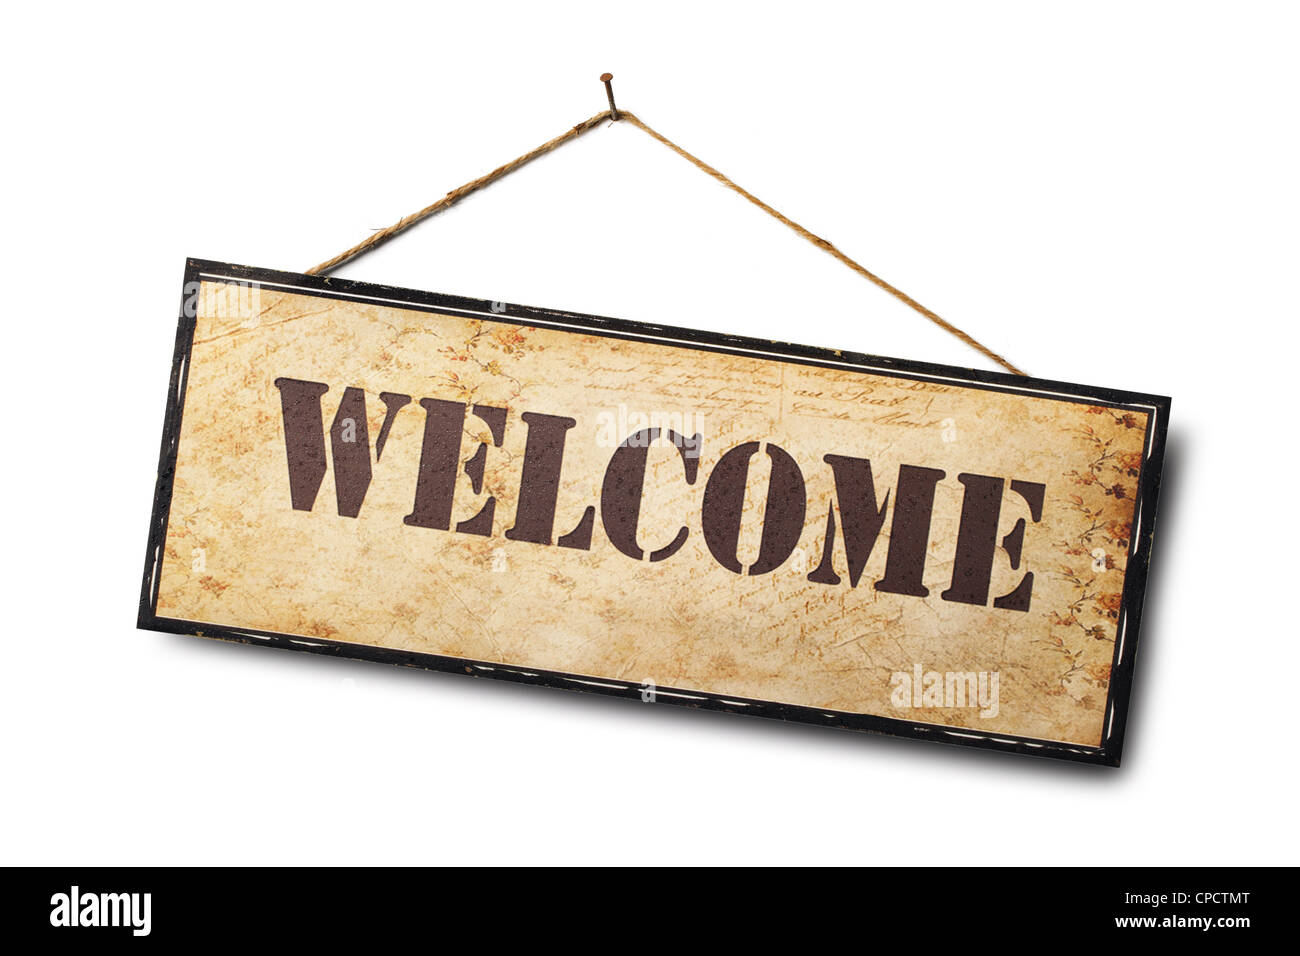 Welcome sign isolated on white. - Stock Image